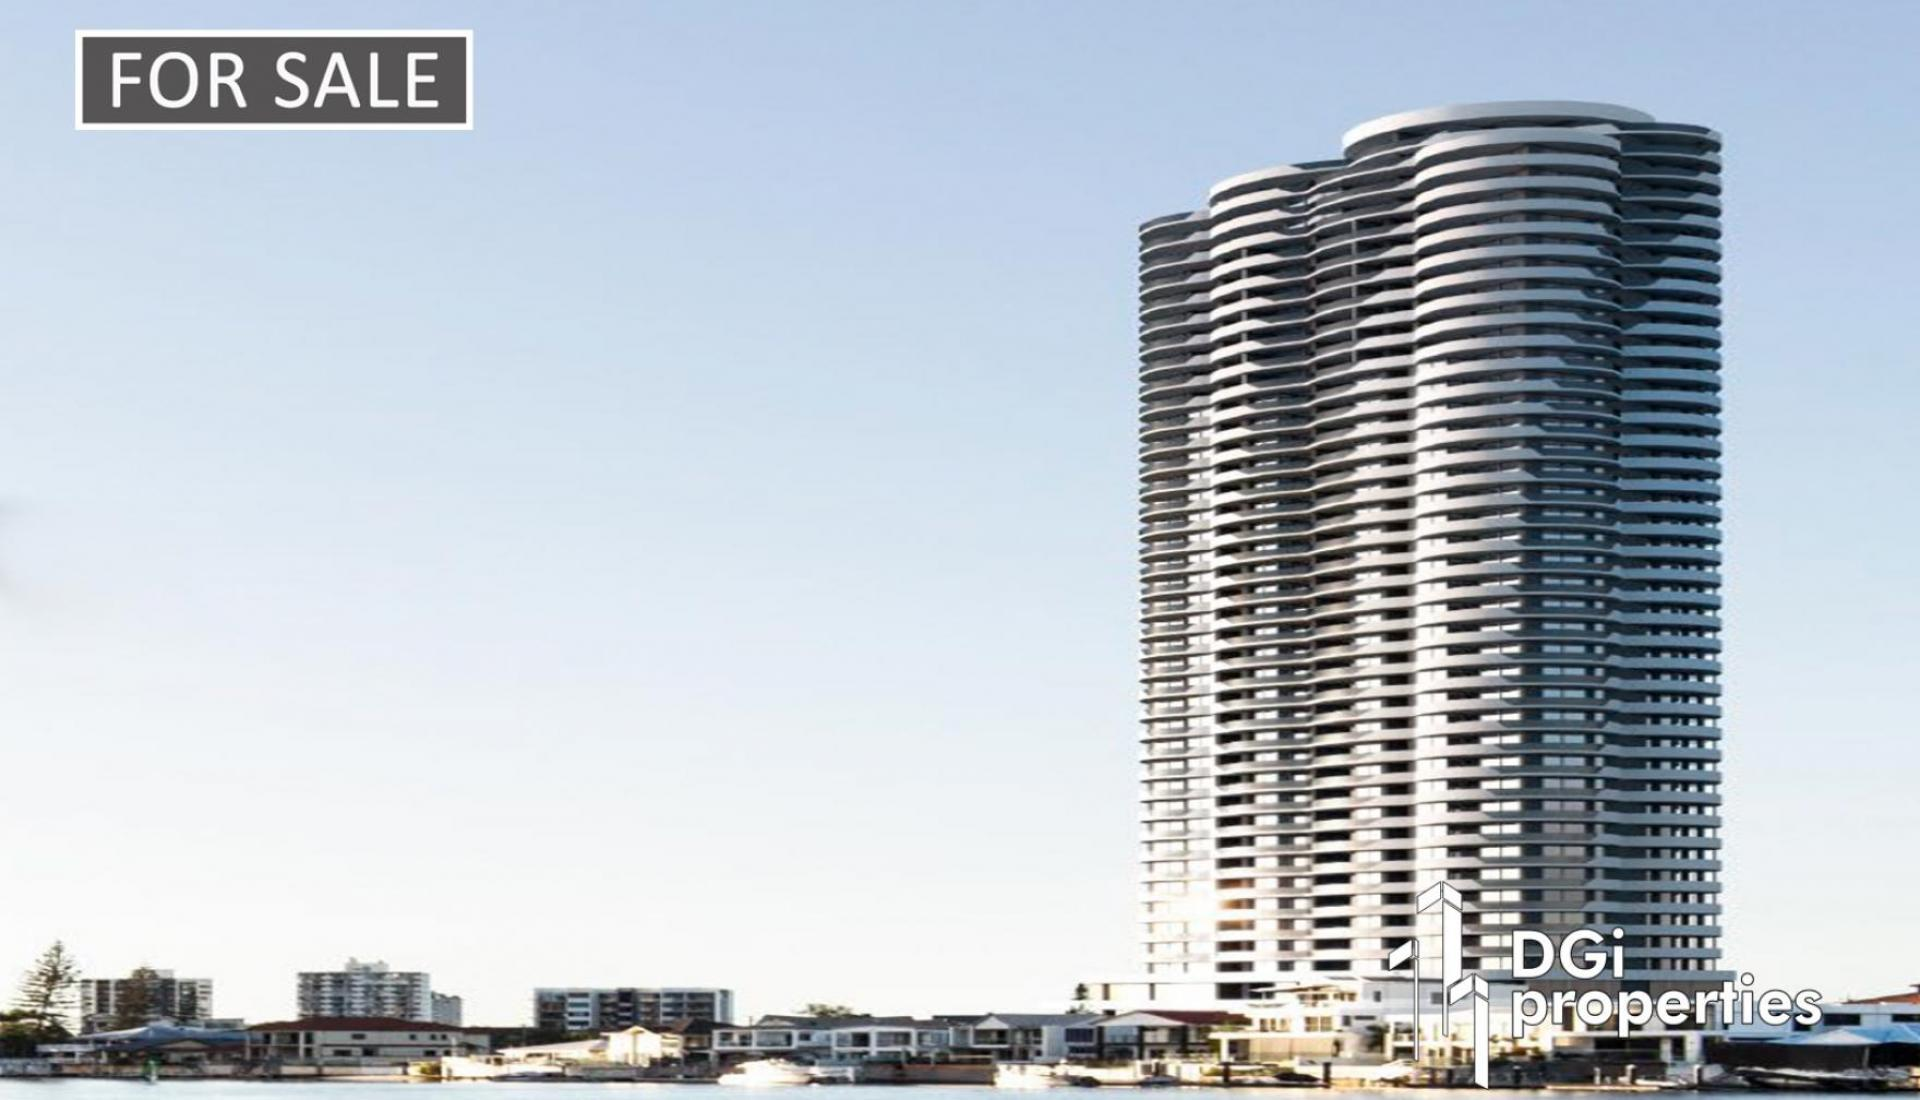 LUXURY QUEENSLAND APARTMENTS